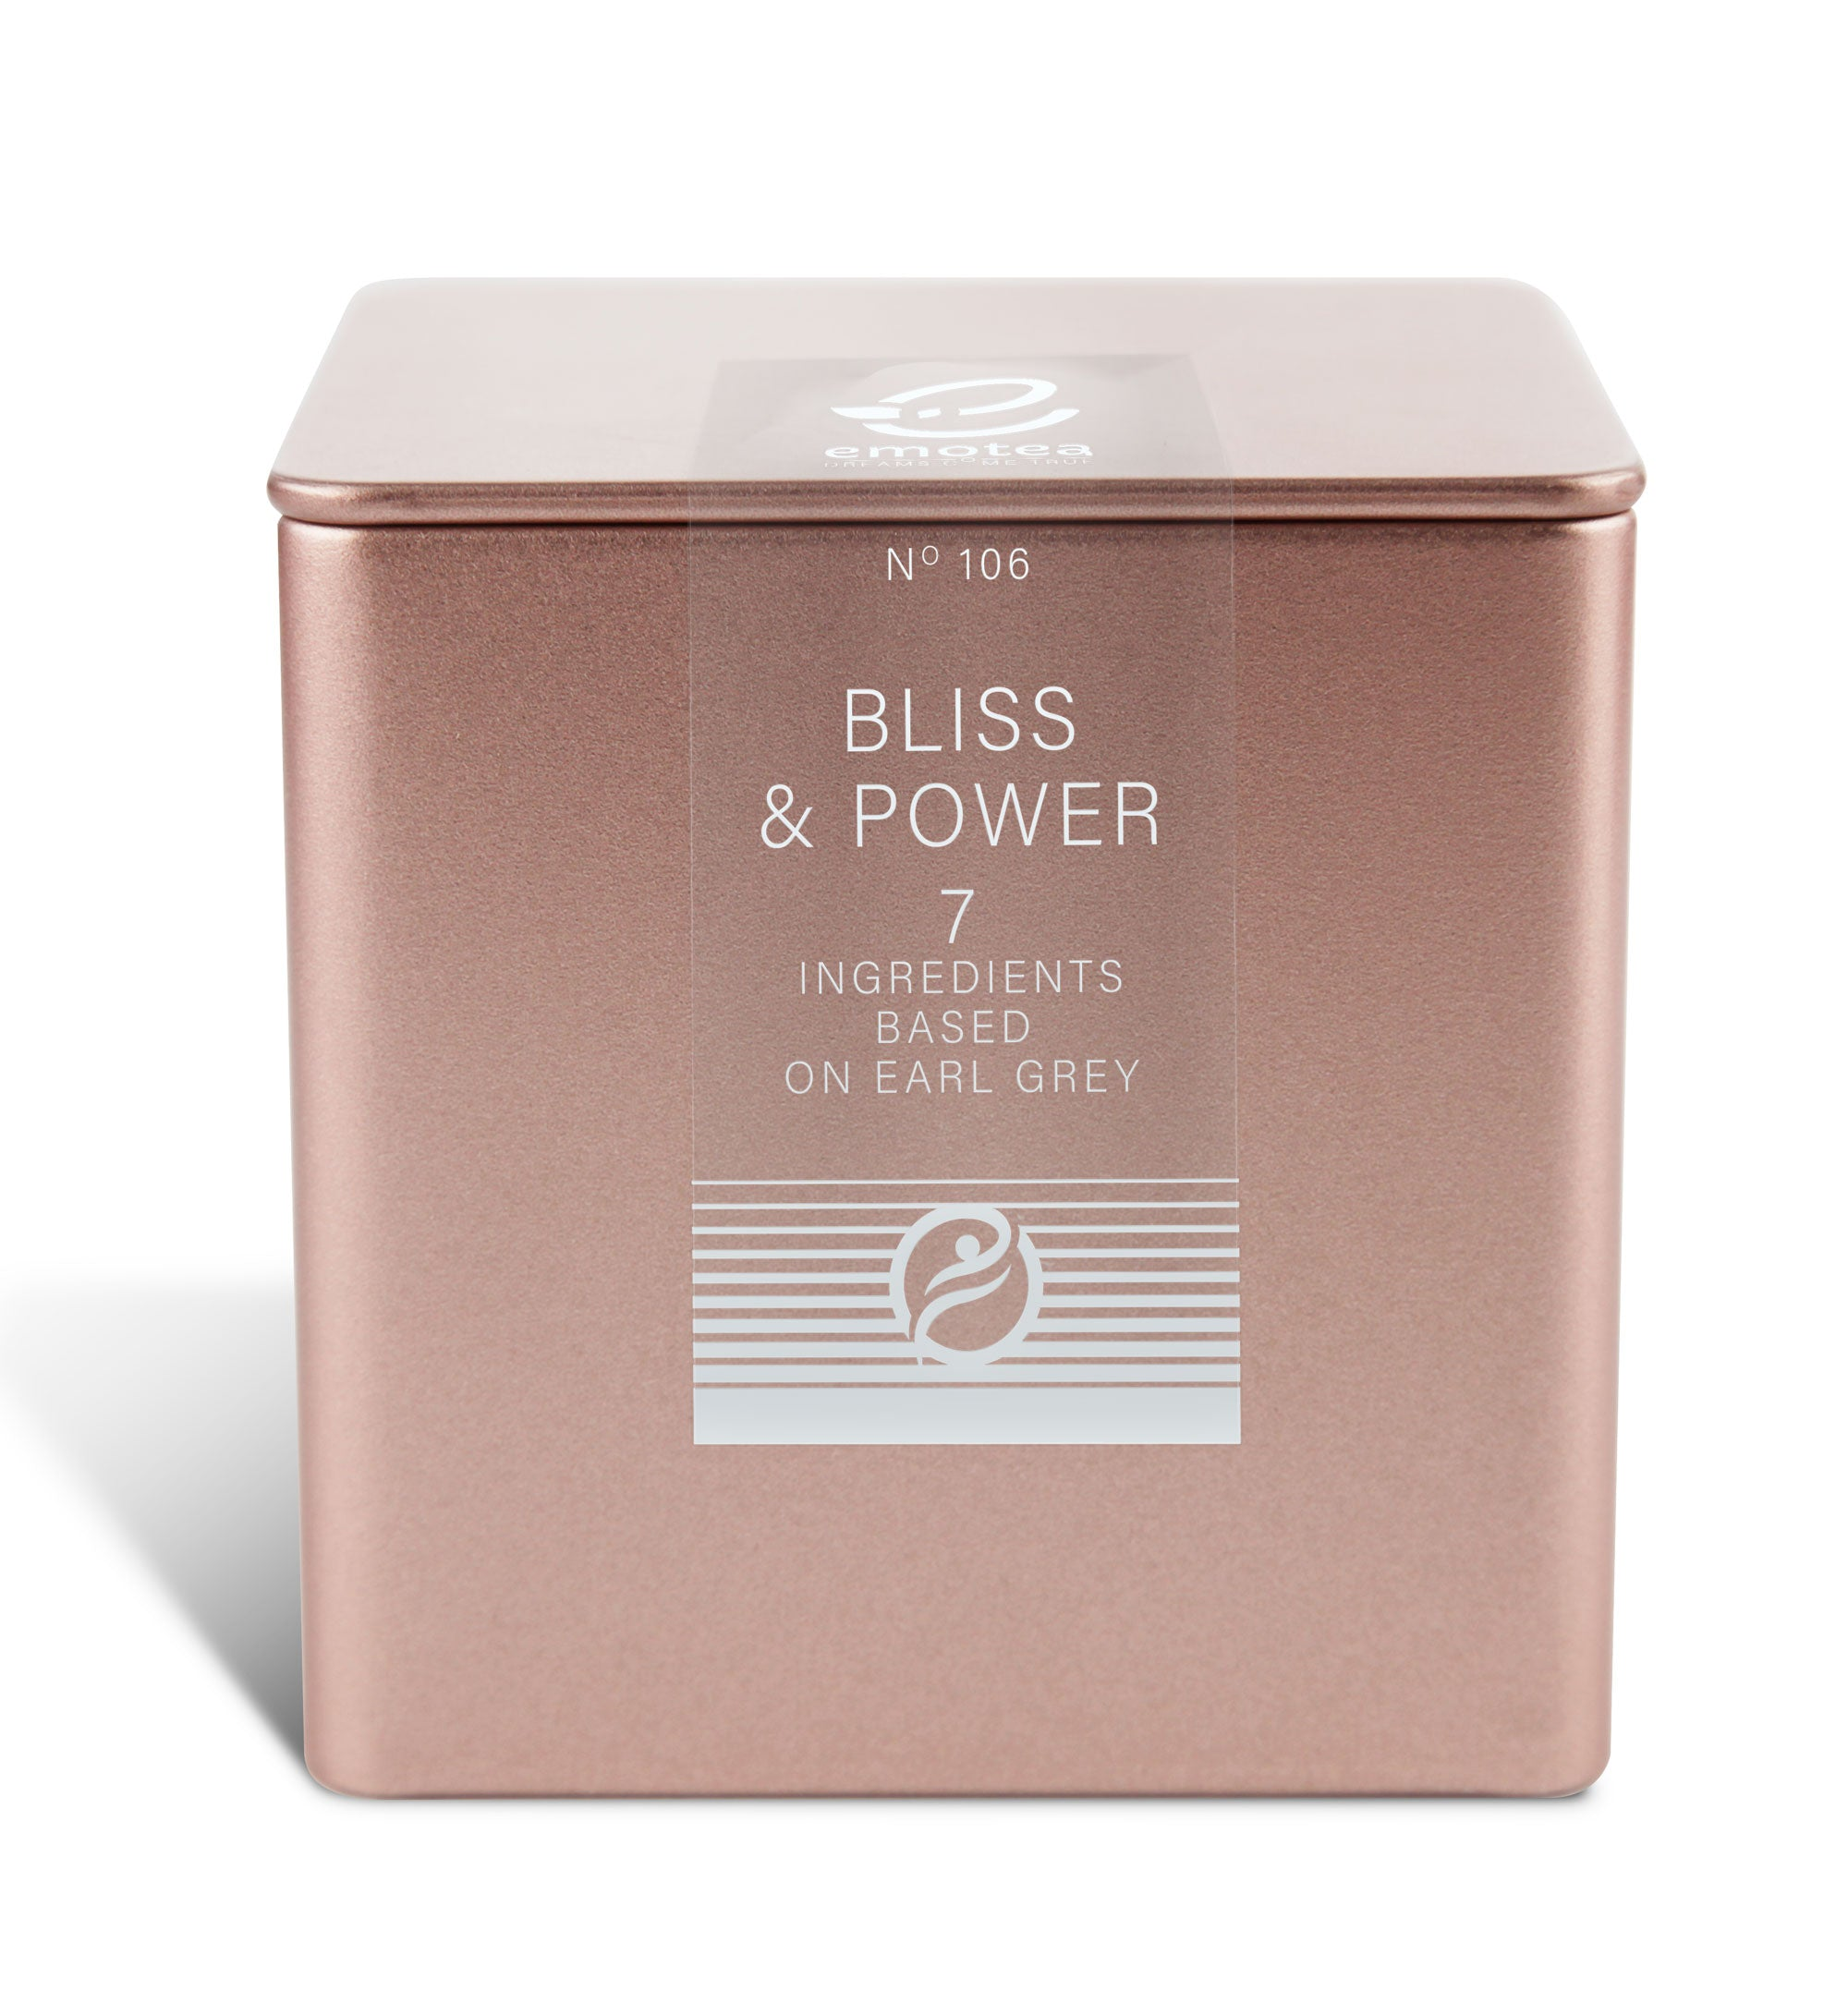 Tea emotea mindfulness Bliss&Power  No 106 packed in tin